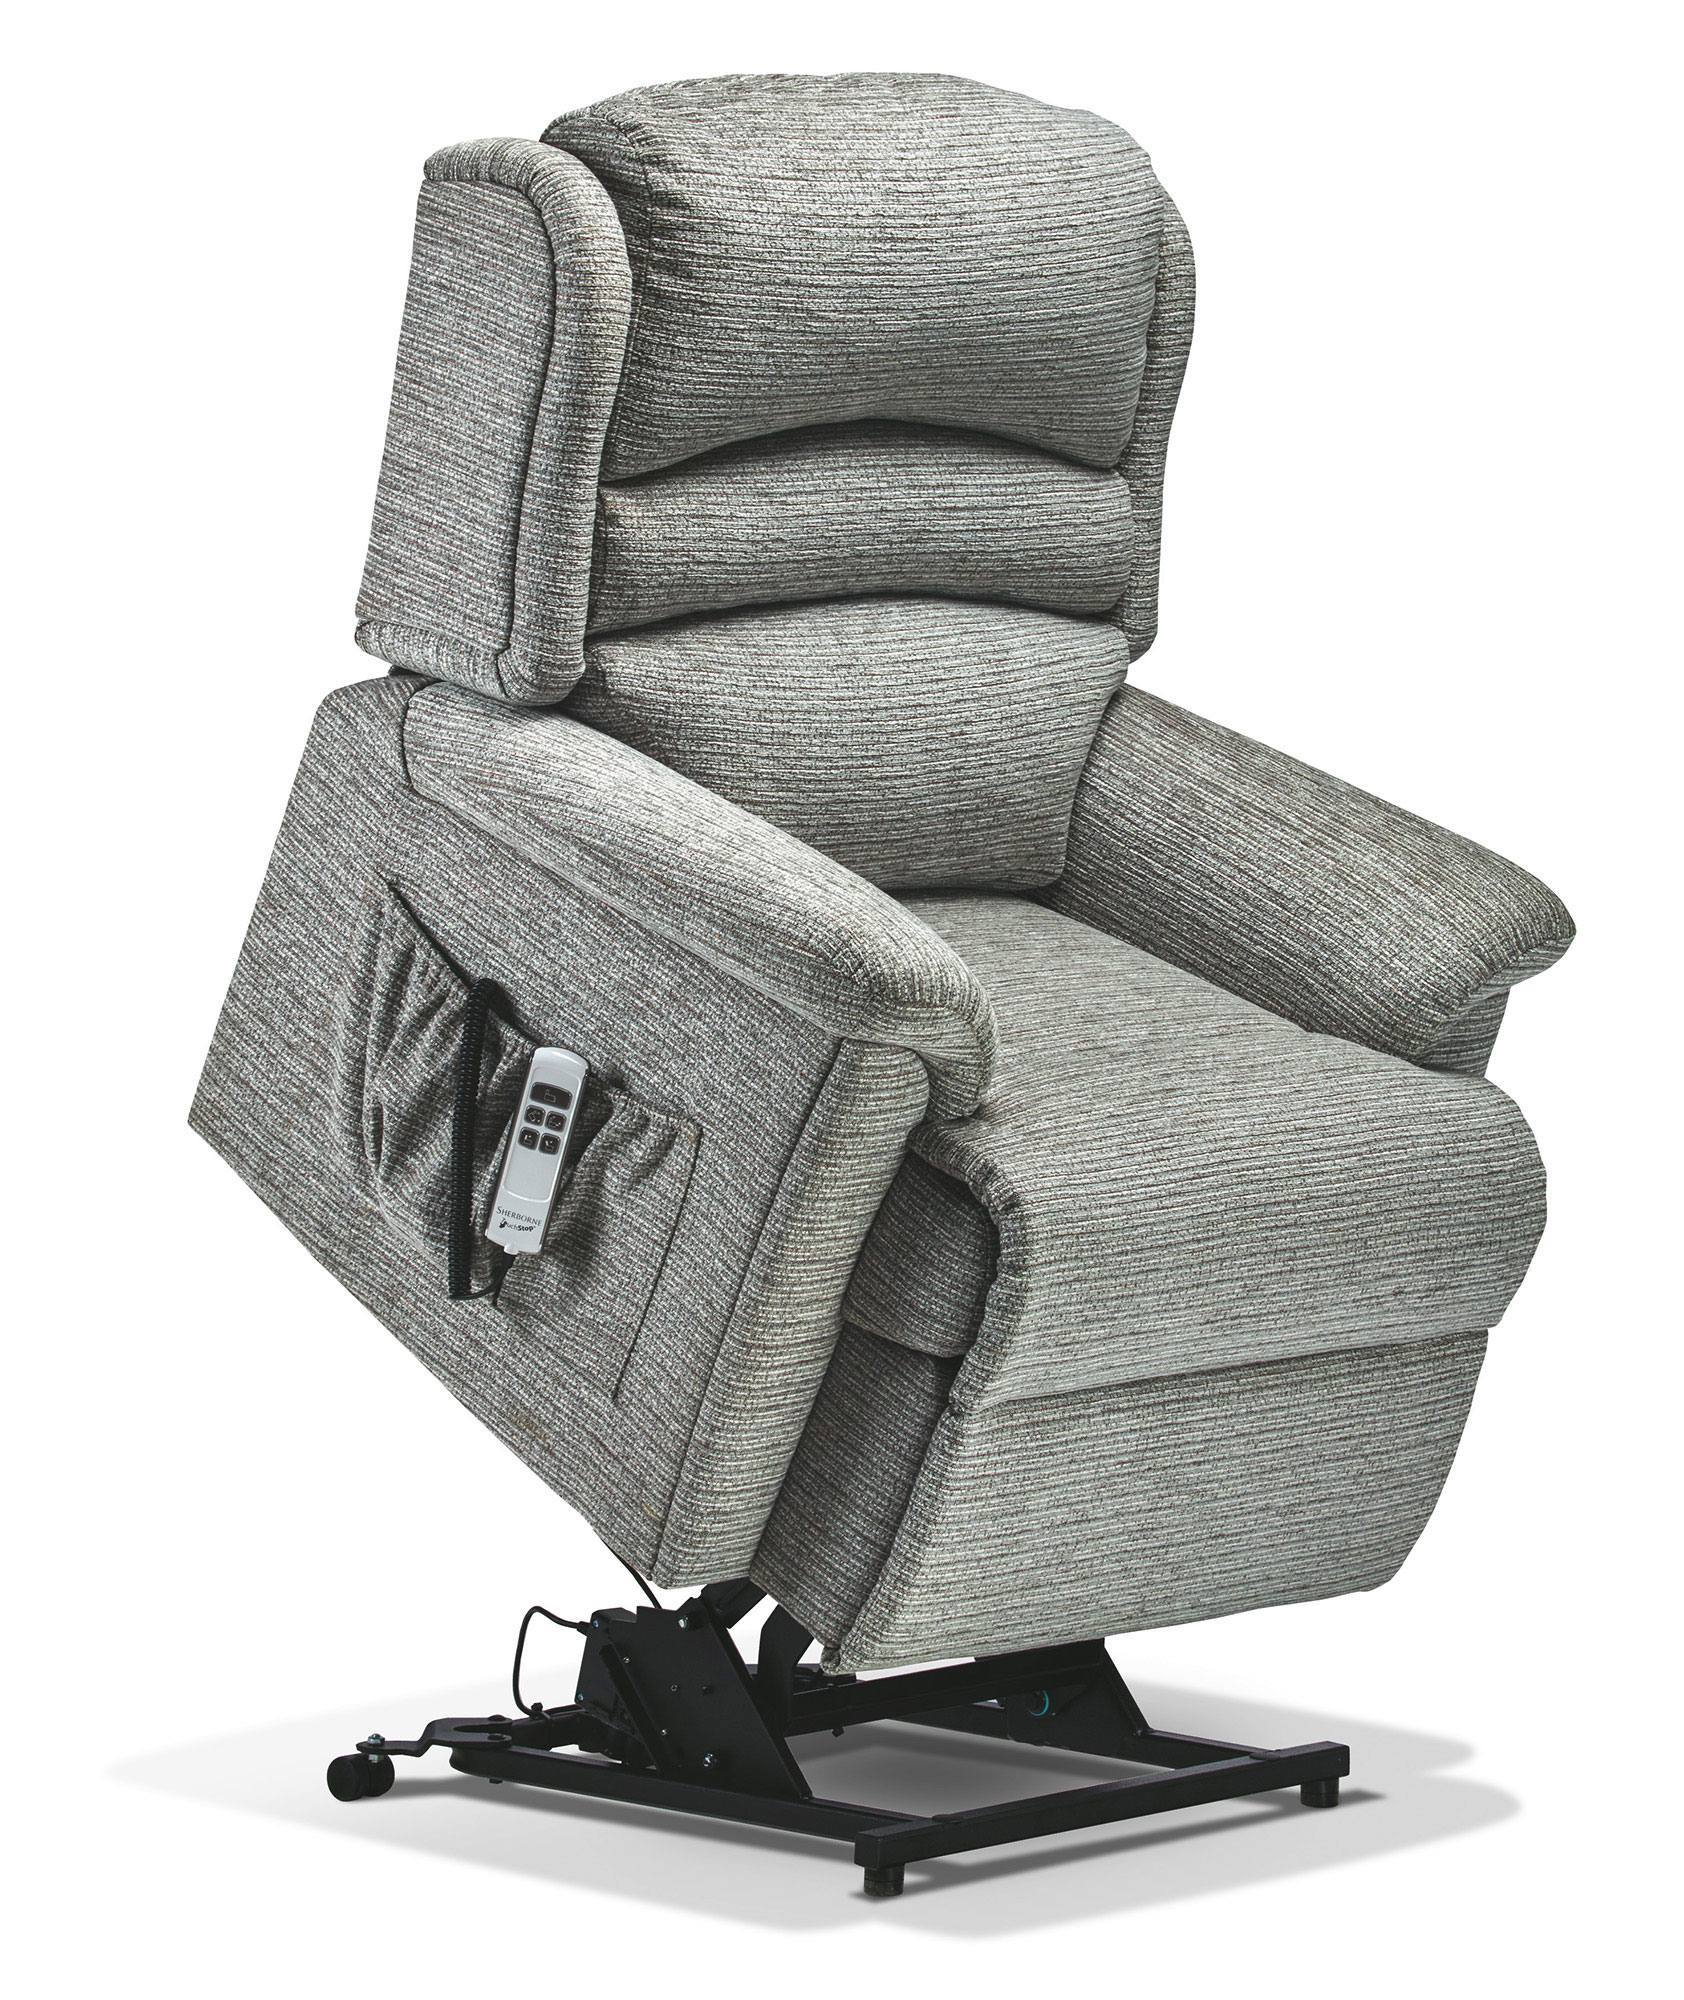 Sherborne Olivia Small Electric Riser Recliner Chair (VAT